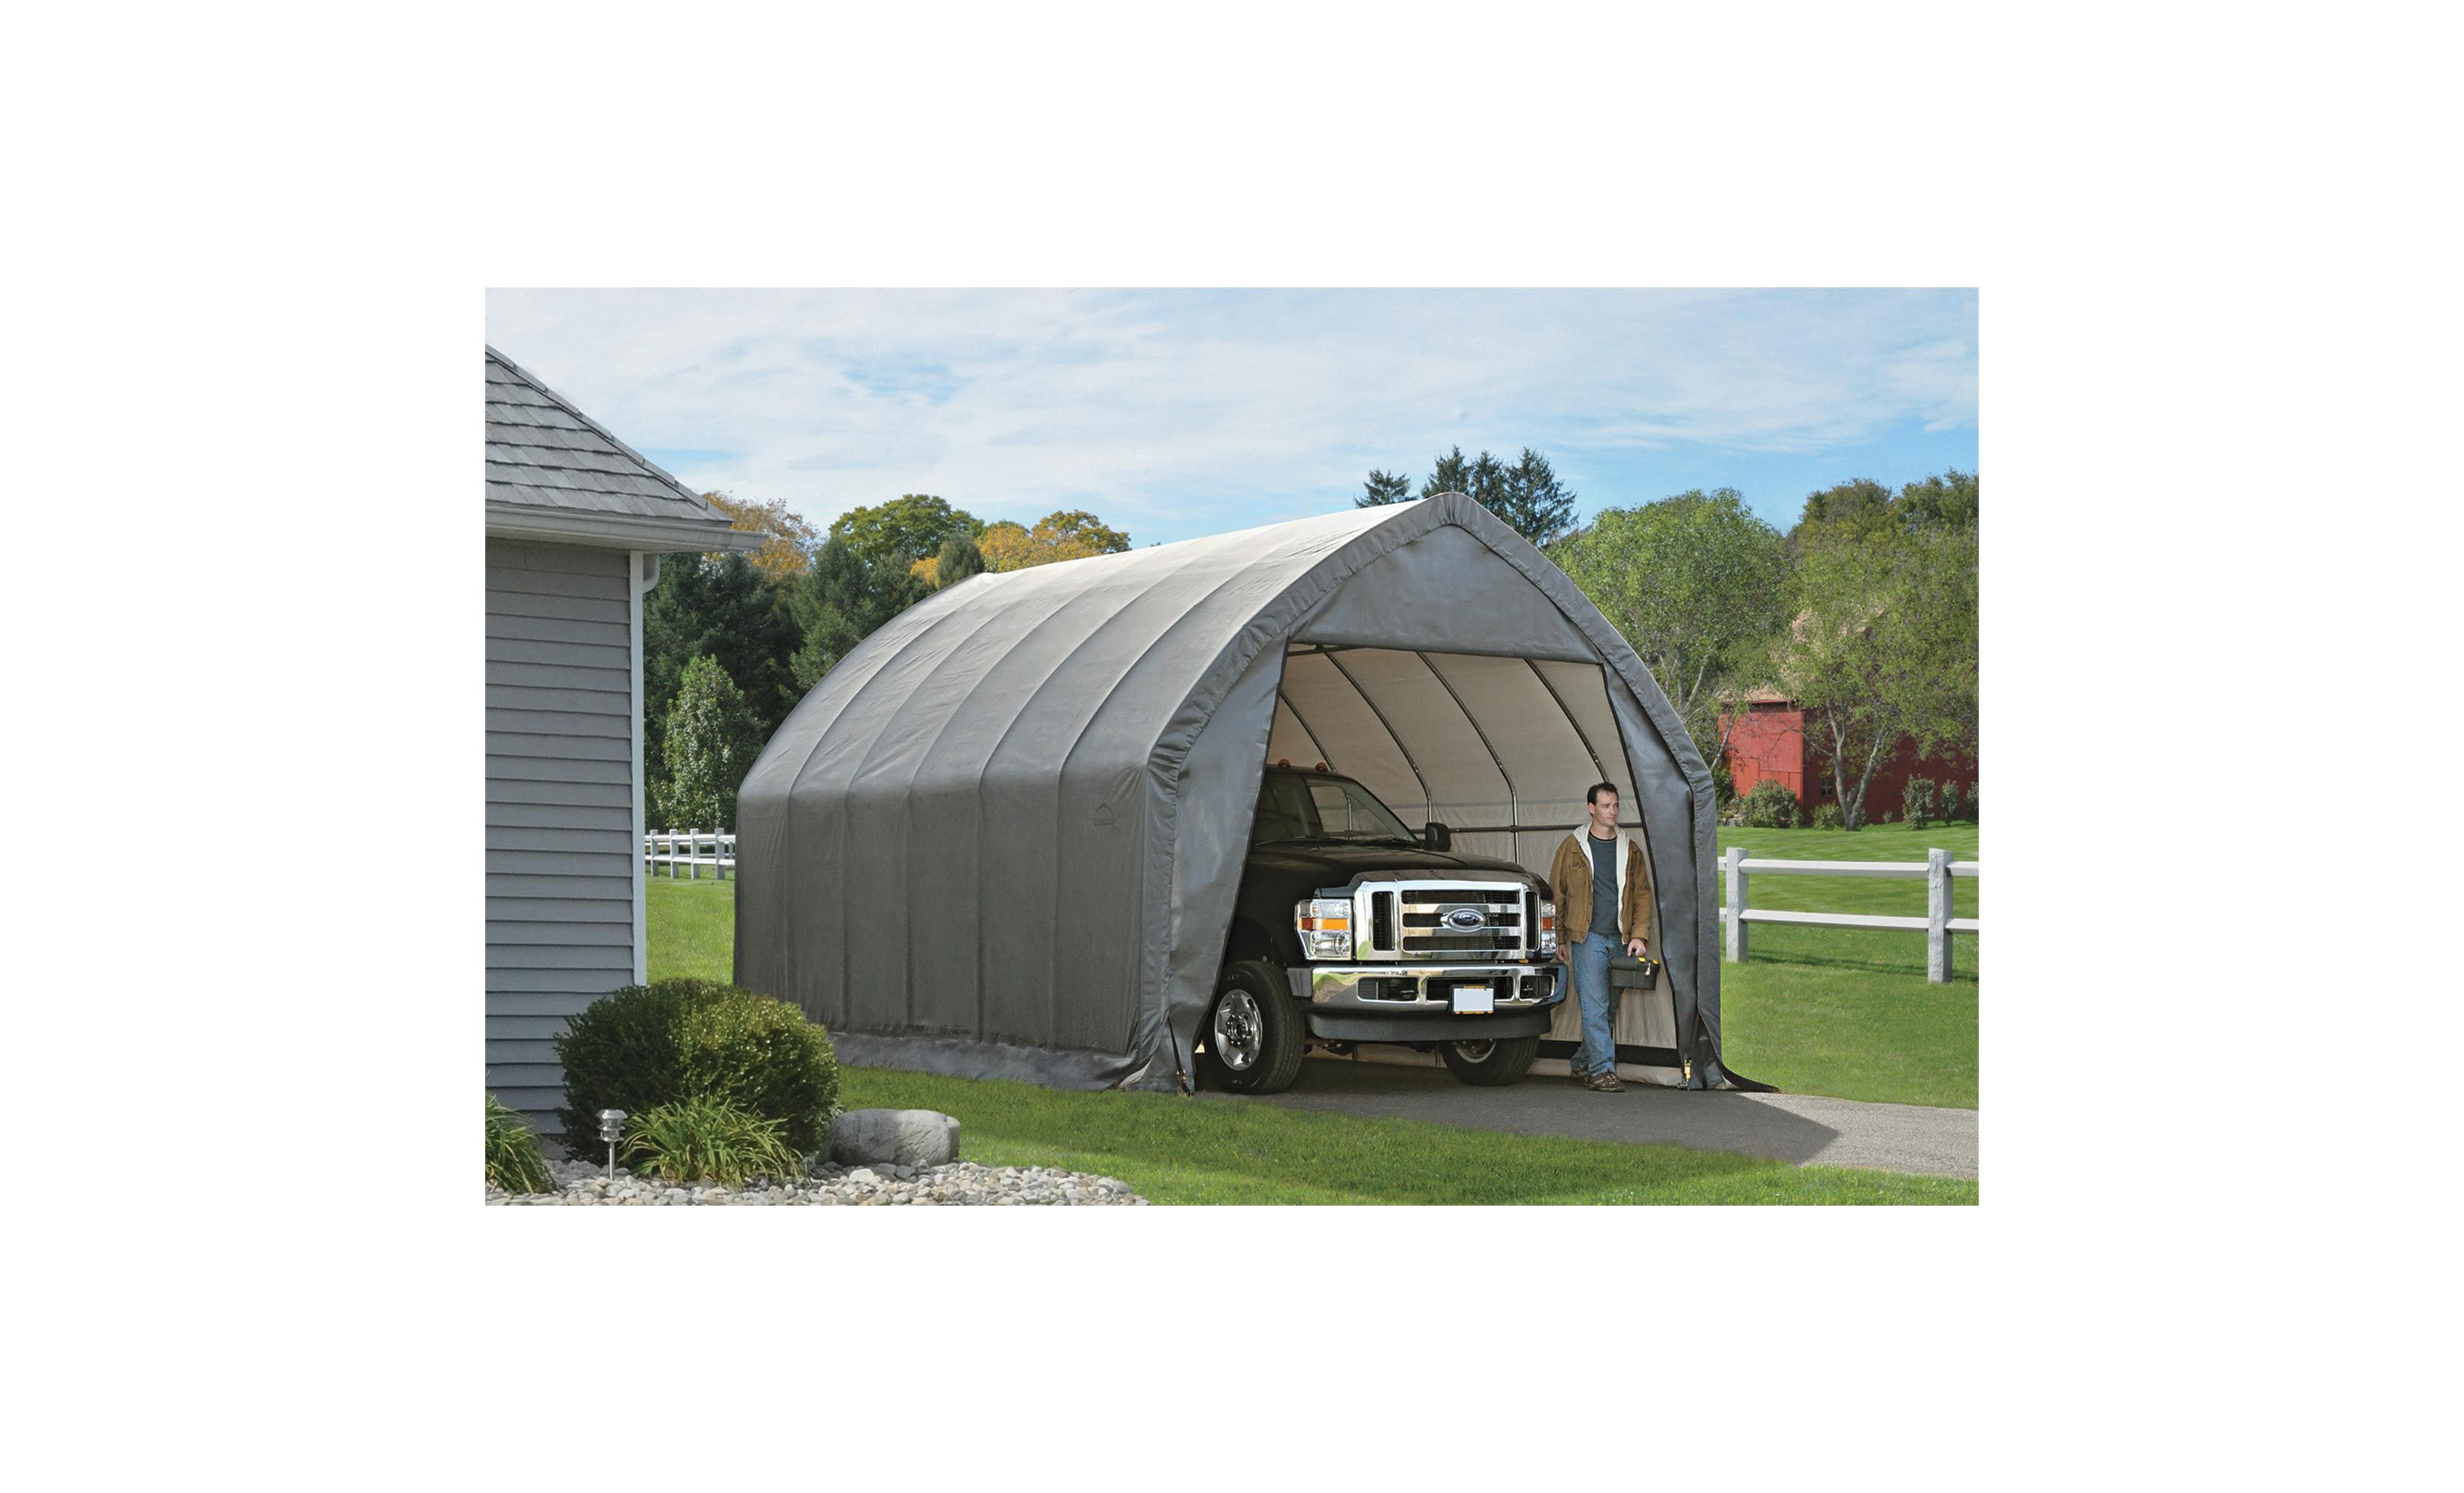 Shelterlogic Garage In A Box For Suv Truck Instant Shelter 20ft L X 13ft W X 12ft H Model 62693 Carport Canopy Outdoor Camping Canopy